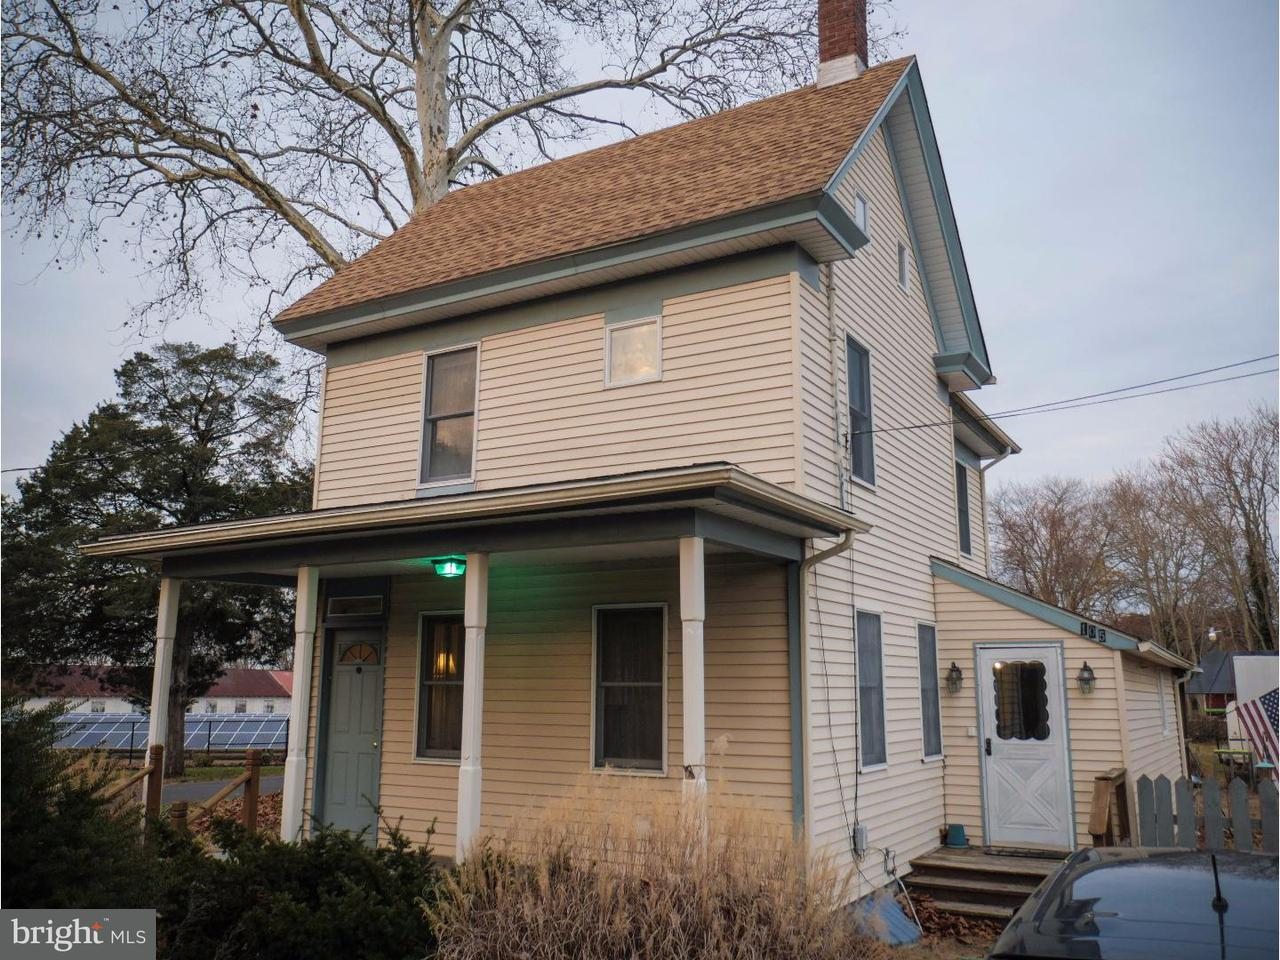 Single Family Home for Sale at 105 CHURCH Street Dorchester, New Jersey 08316 United States